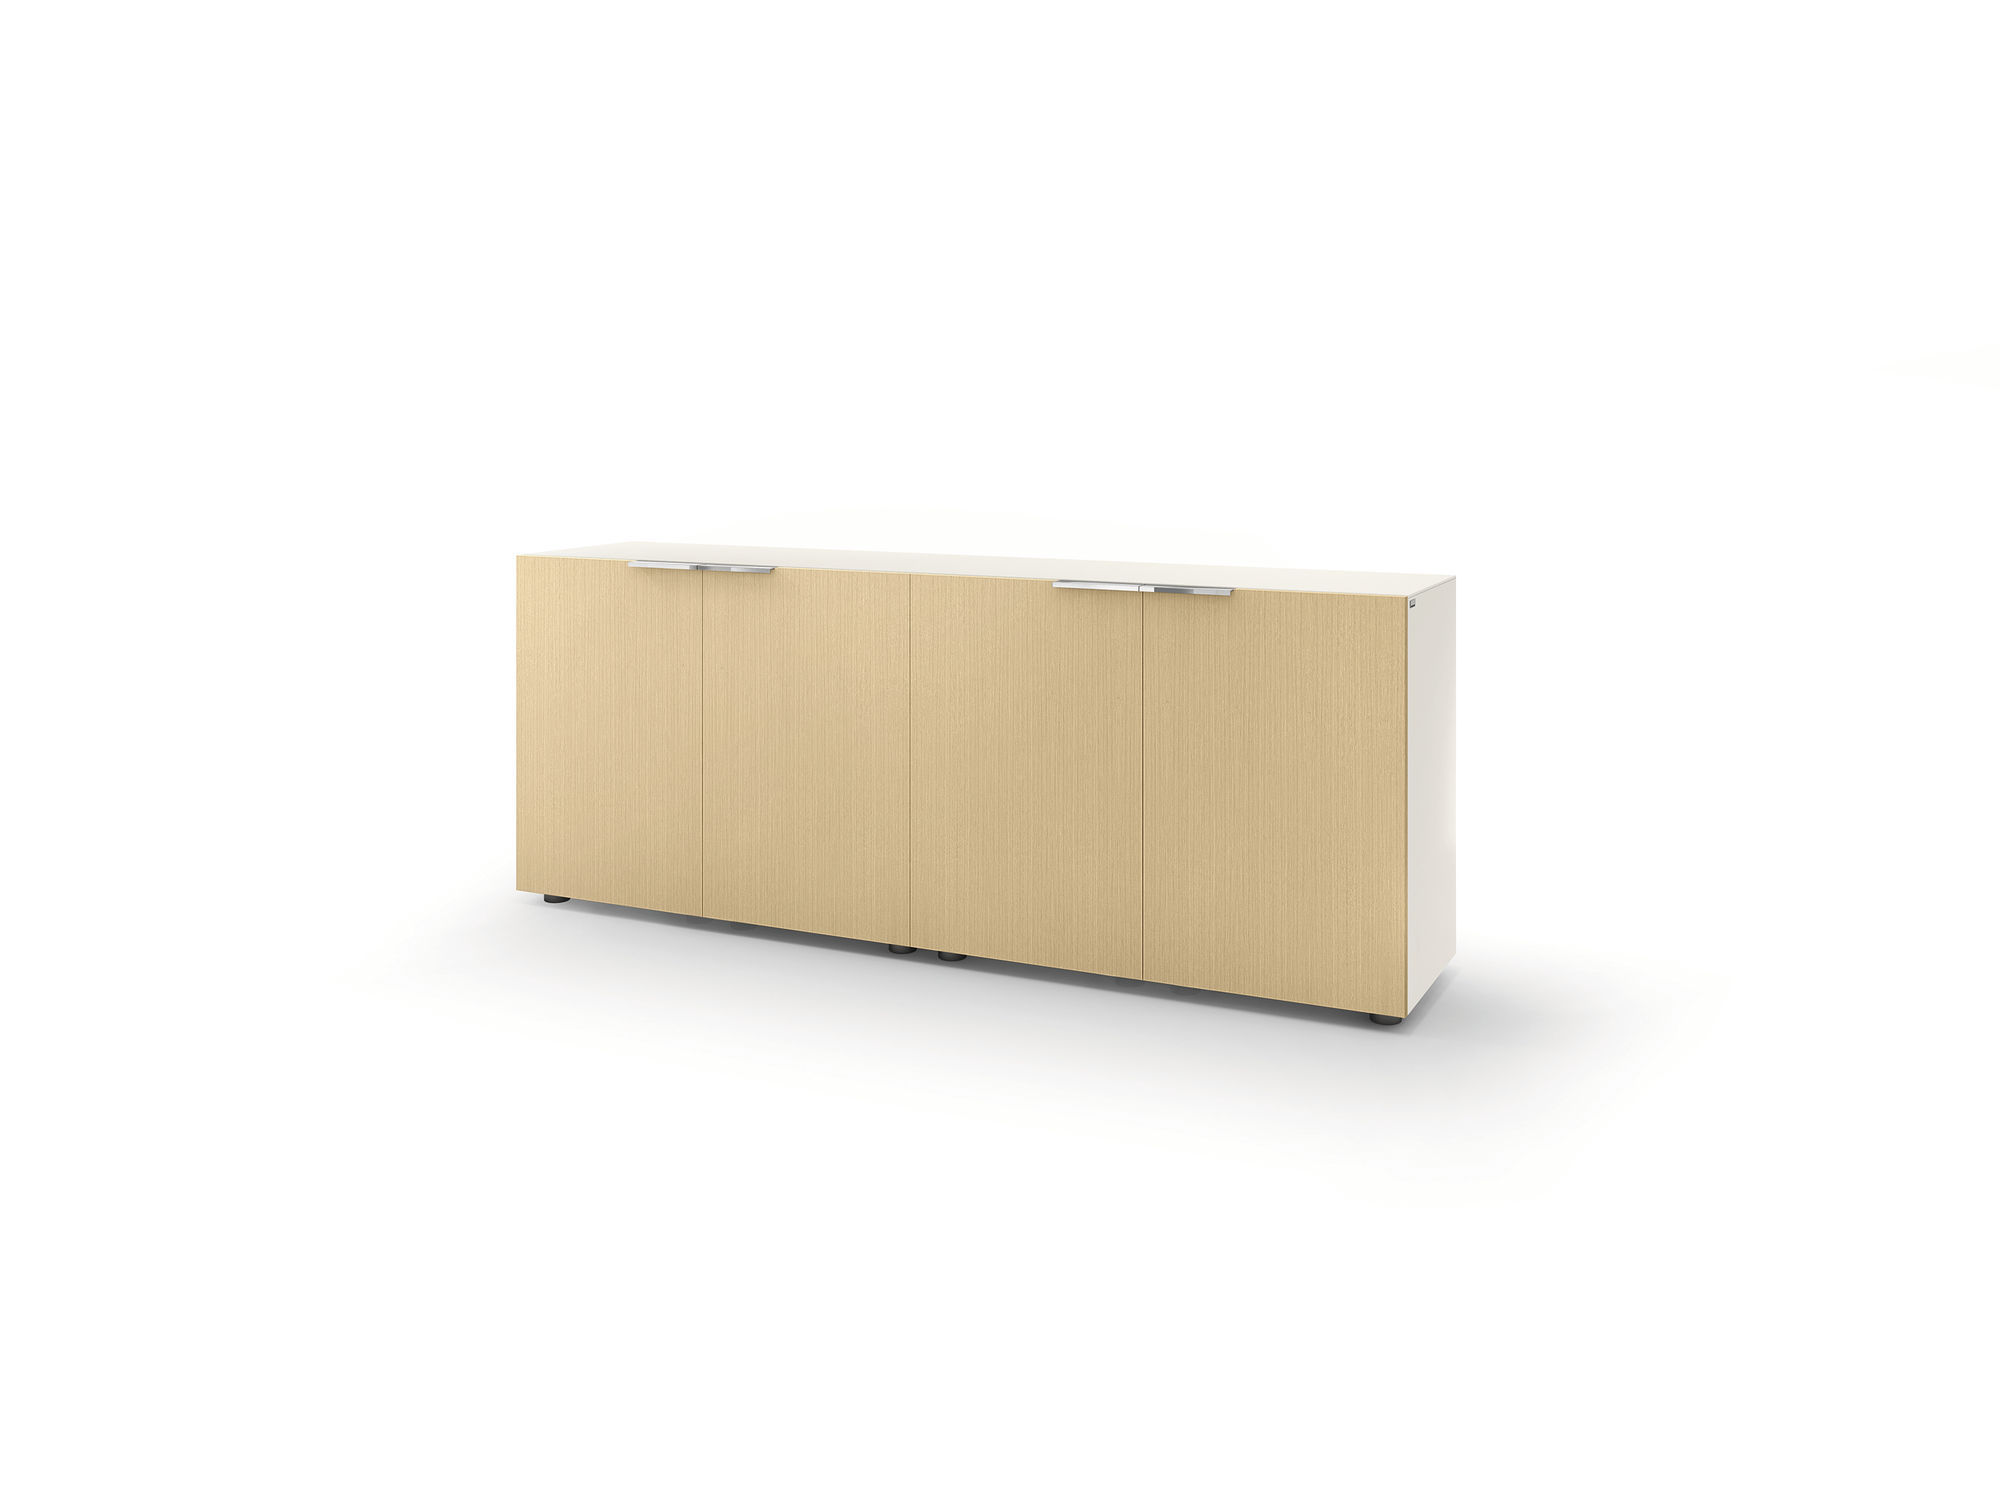 Wood Veneer Cabinet Doors Low Filing Cabinet Wood Veneer With Hinged Door With Sliding